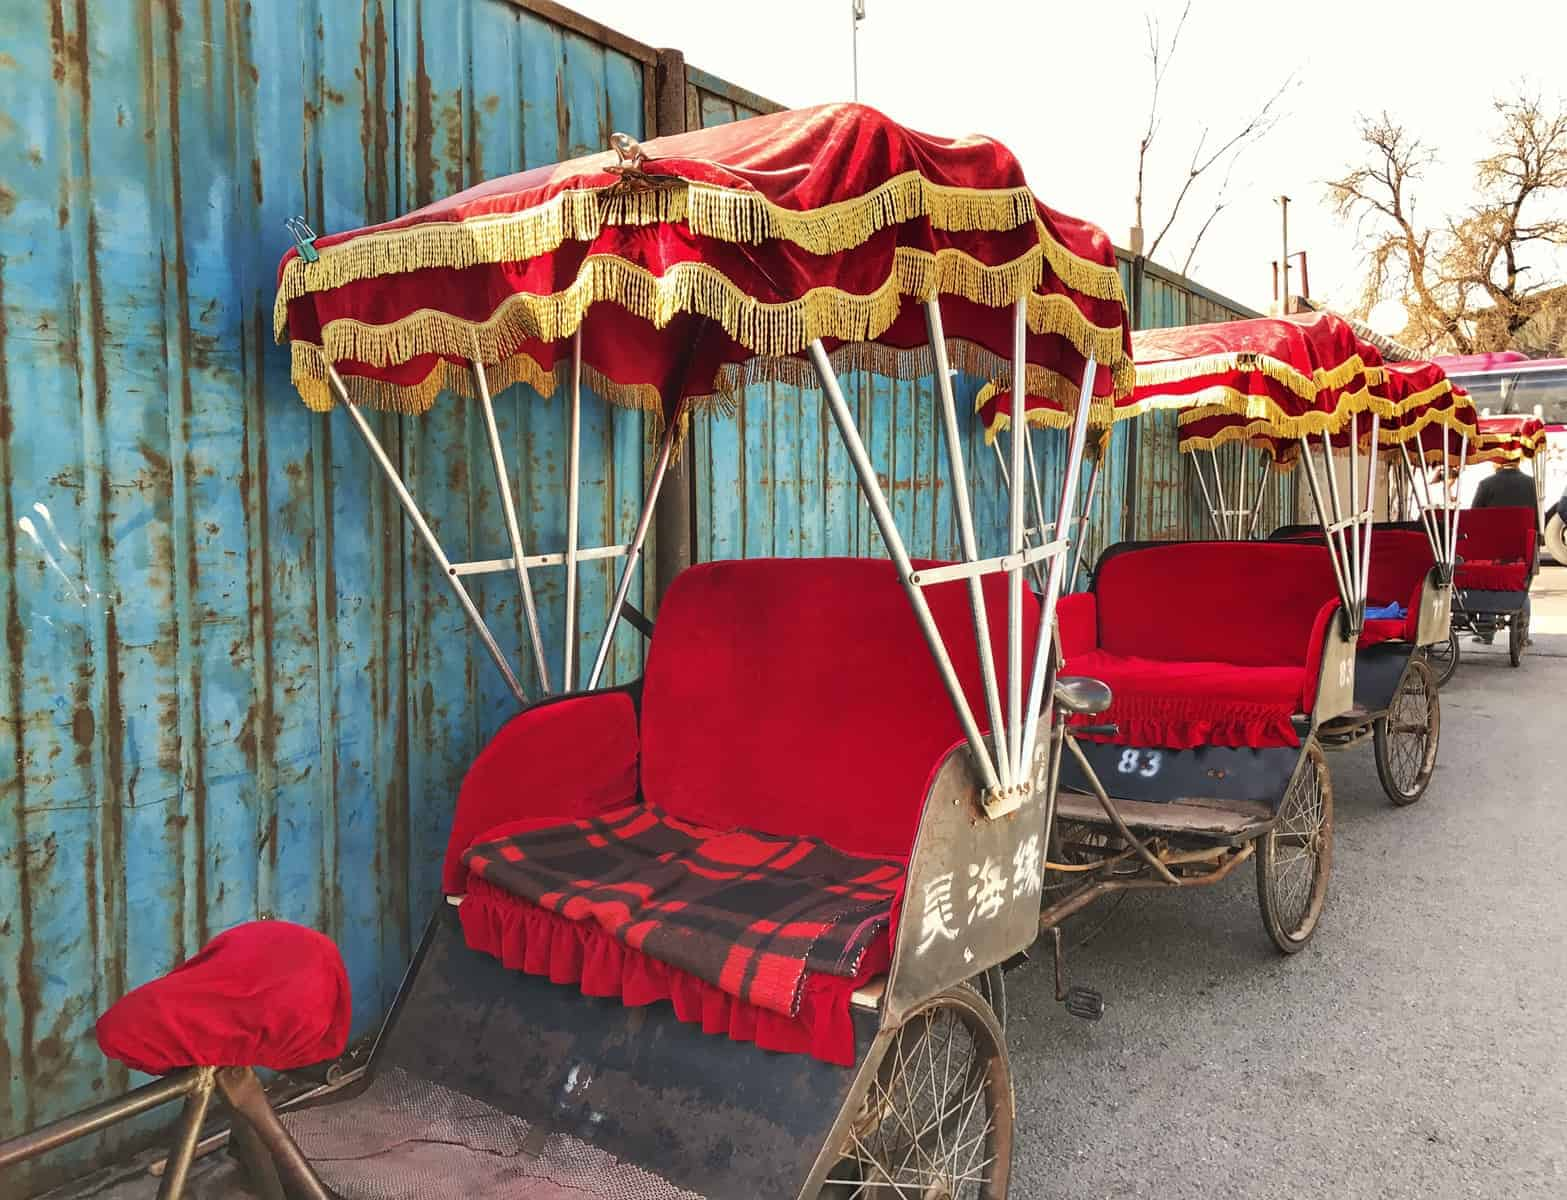 The rickshaw tours of the hutongs start near Houhai Lake